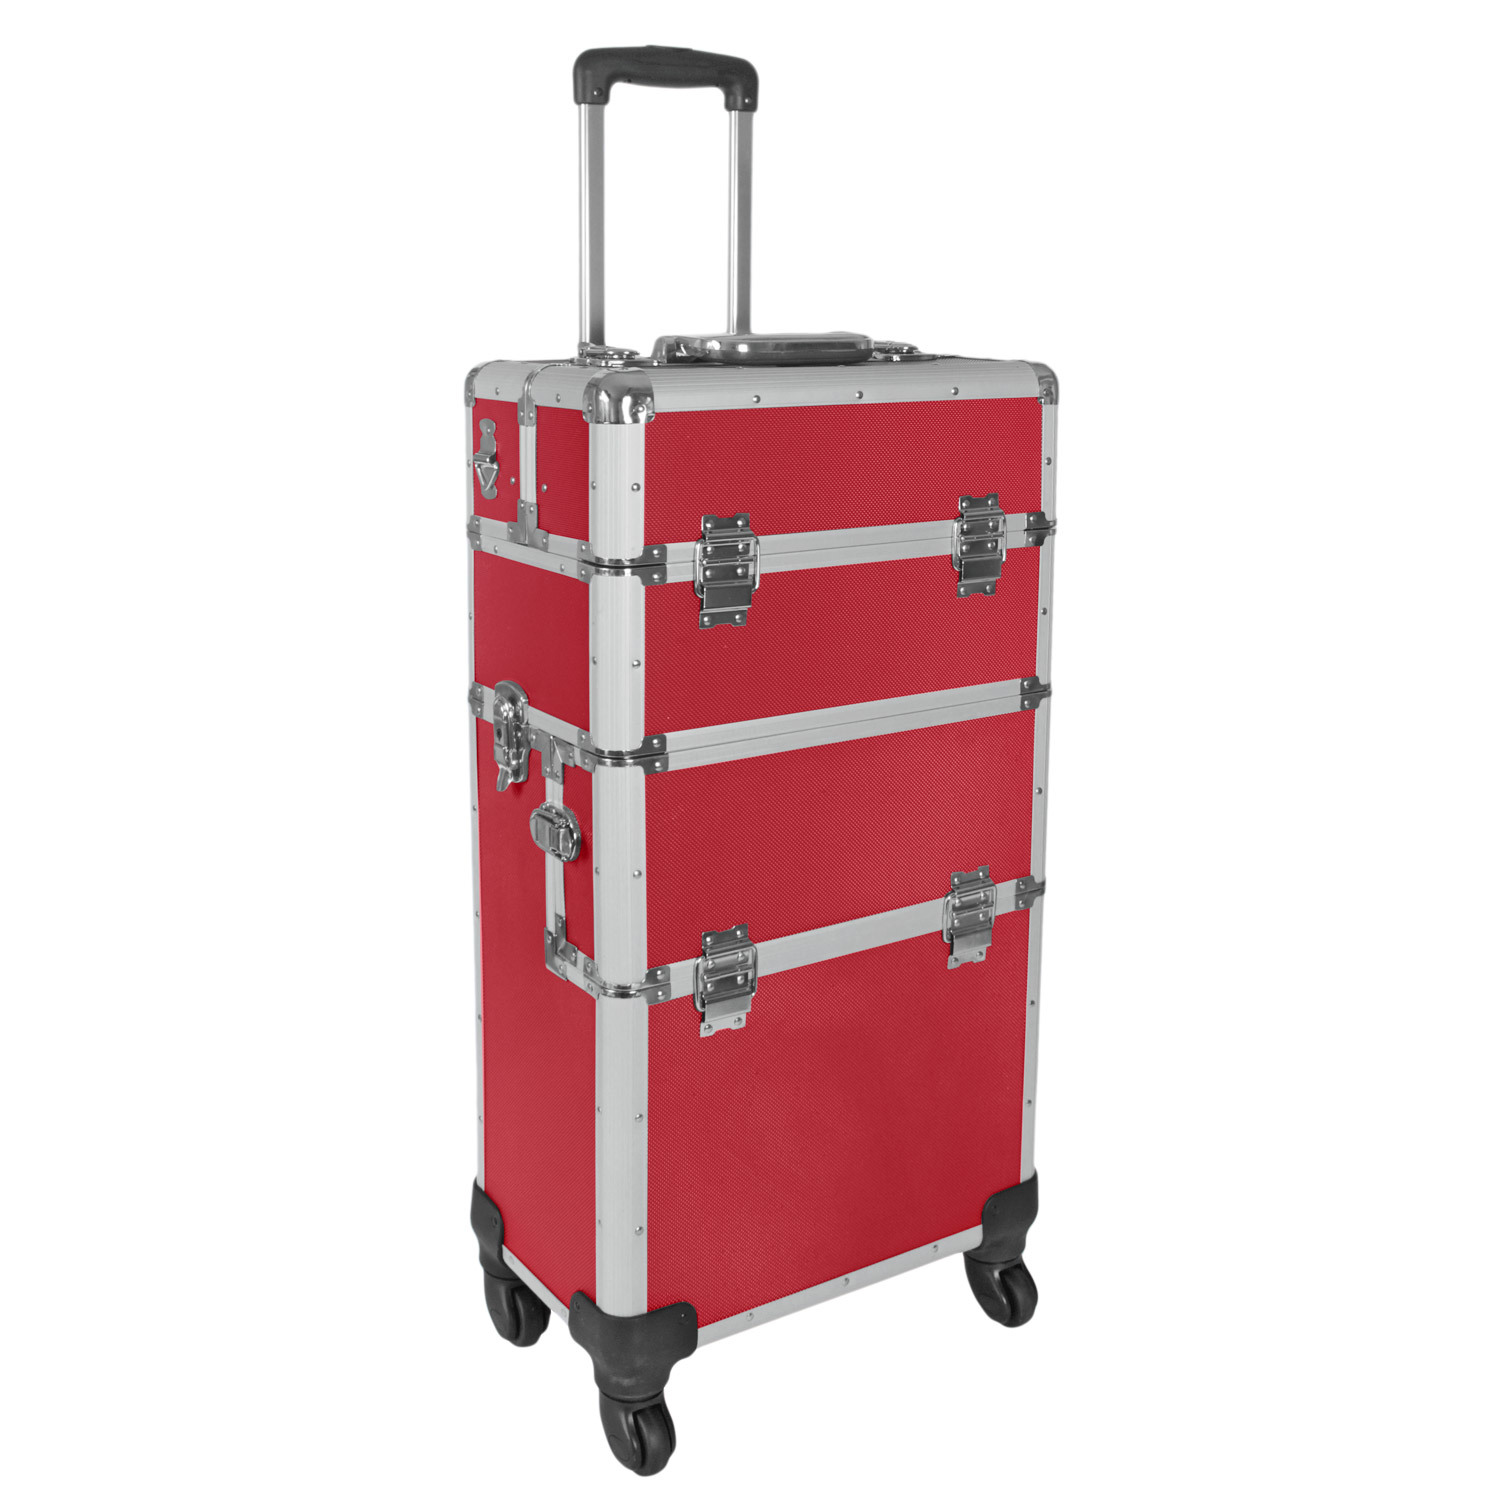 champ aluminium trolley pilotenkoffer friseurkoffer rot pr sentationstrolley ebay. Black Bedroom Furniture Sets. Home Design Ideas